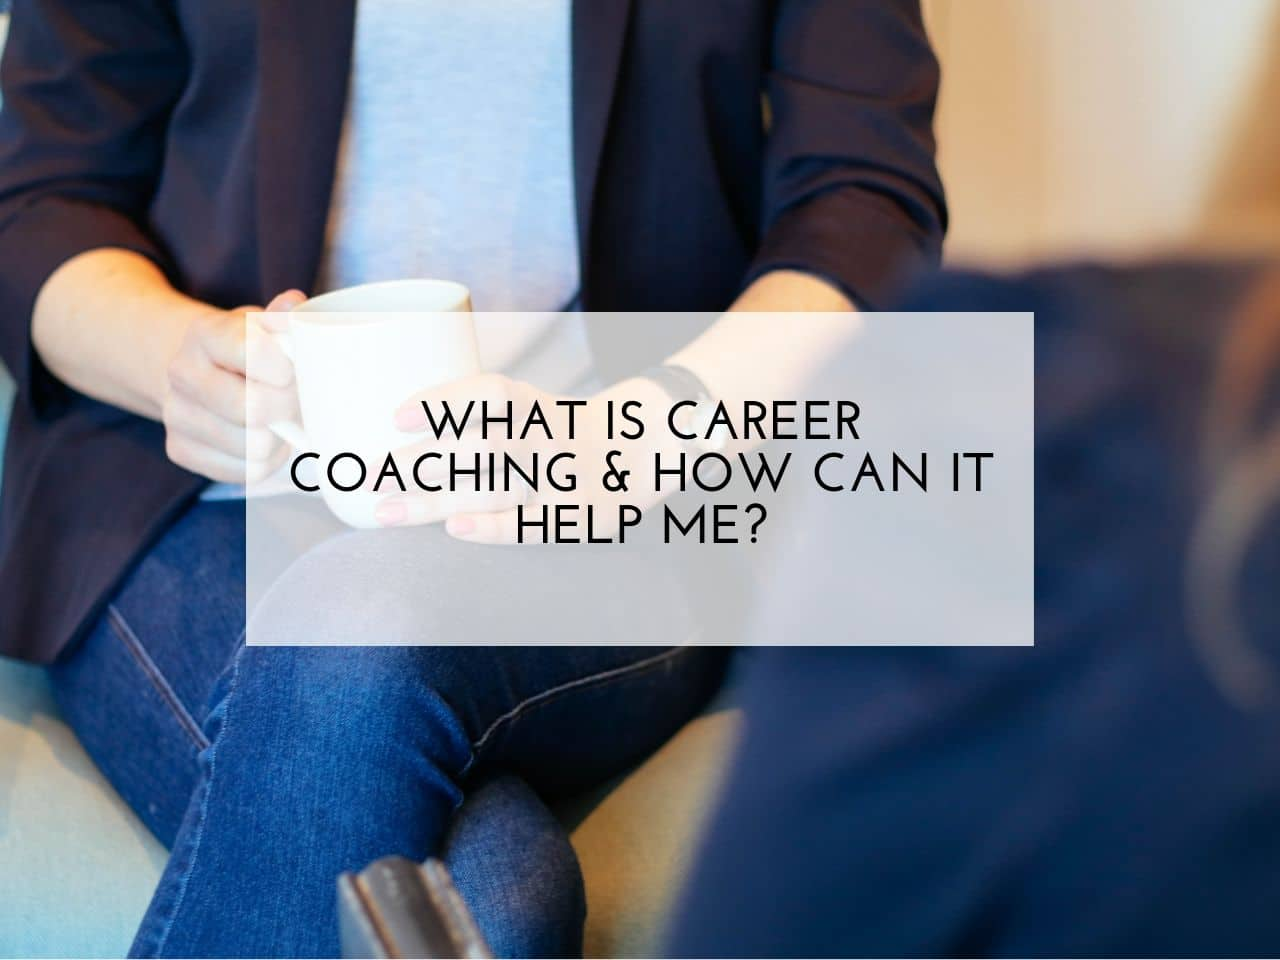 What is career coaching and how can it help me?